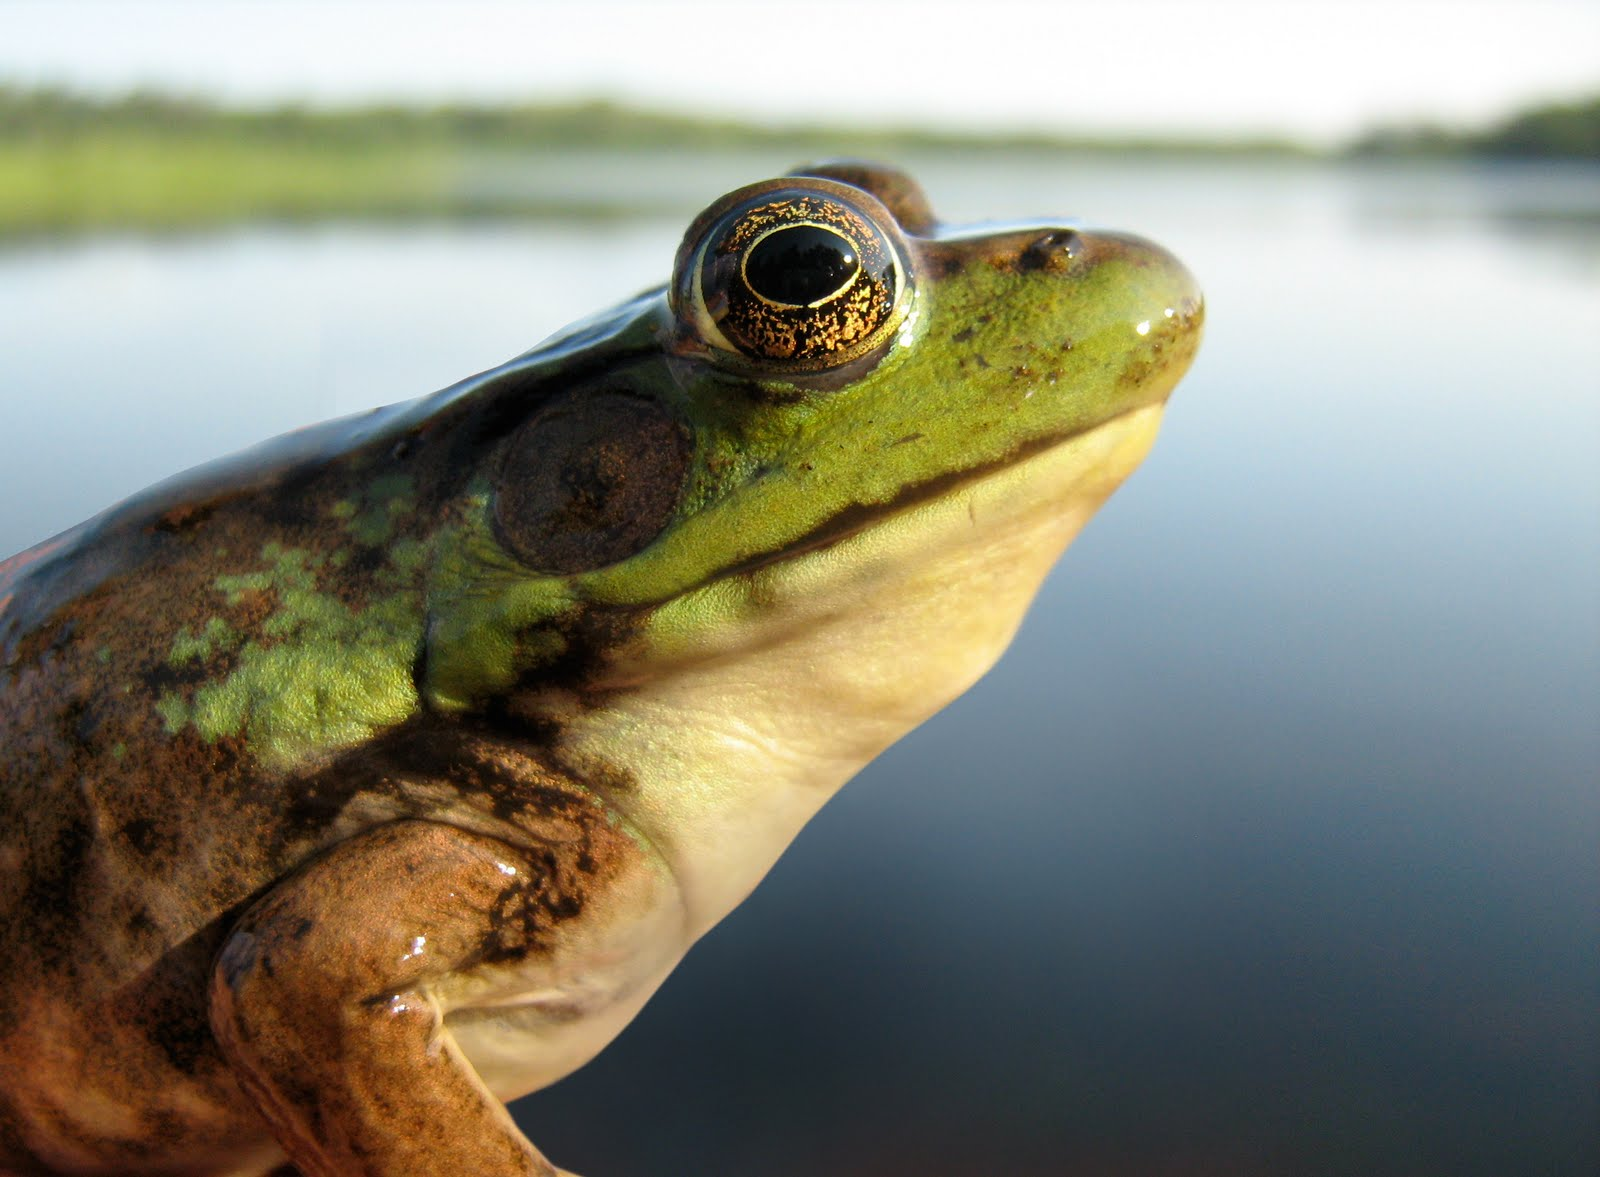 Amphibians, an indicator of healthy ecosystems, are killed by the surficant in glyphosate.